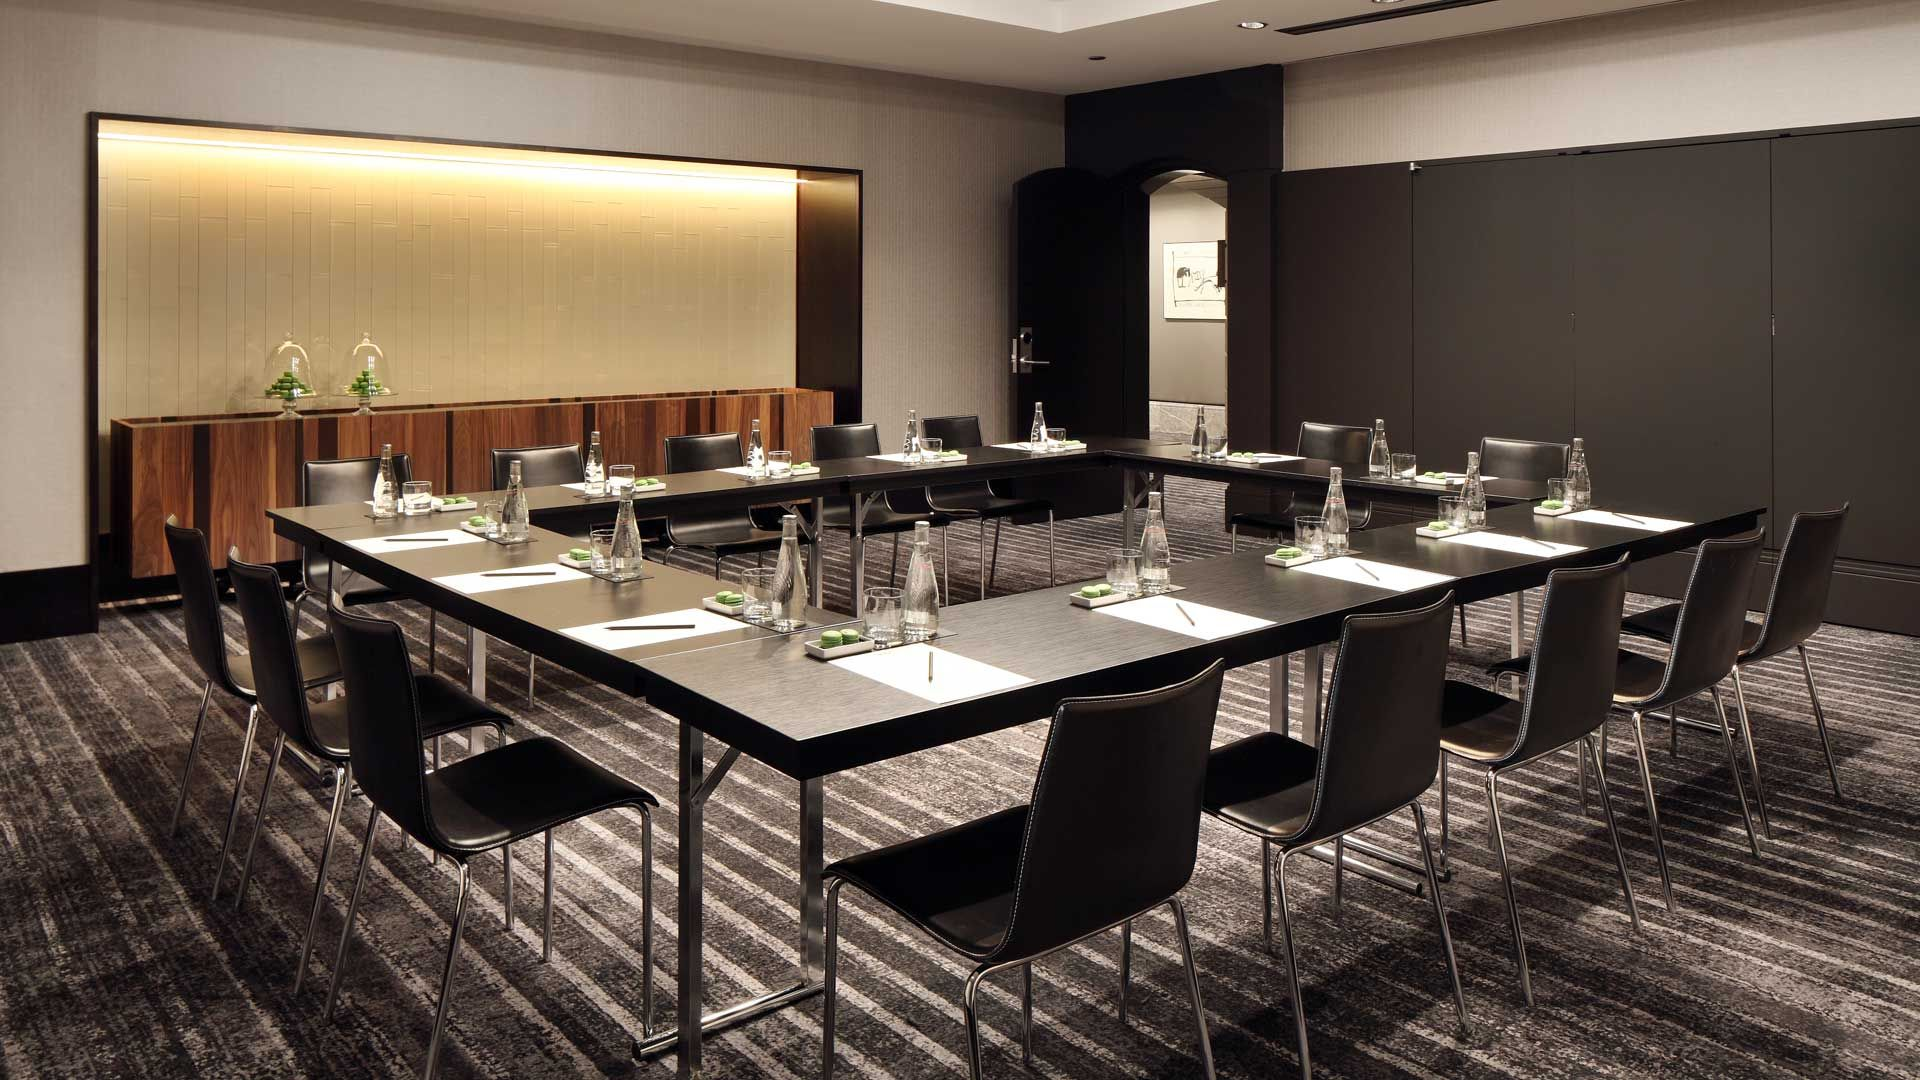 Meeting Room With Images Meeting Room Hotel Conference Room